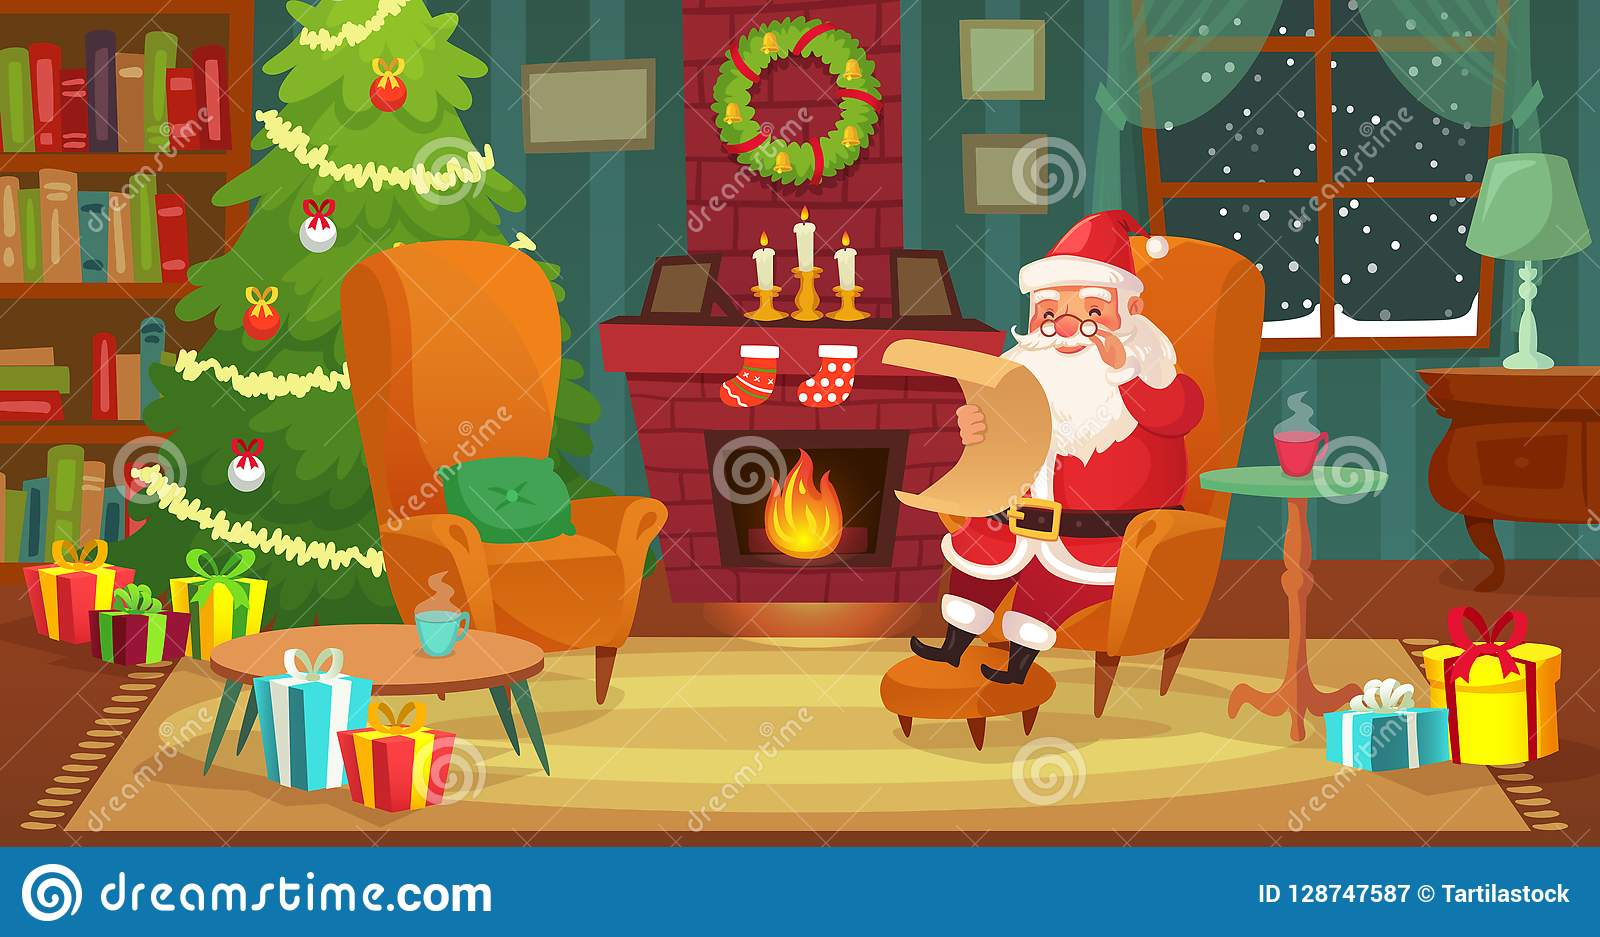 Christmas Fireplace Scene Clipart.Christmas Interior Santa Claus Winter Holiday Decorated